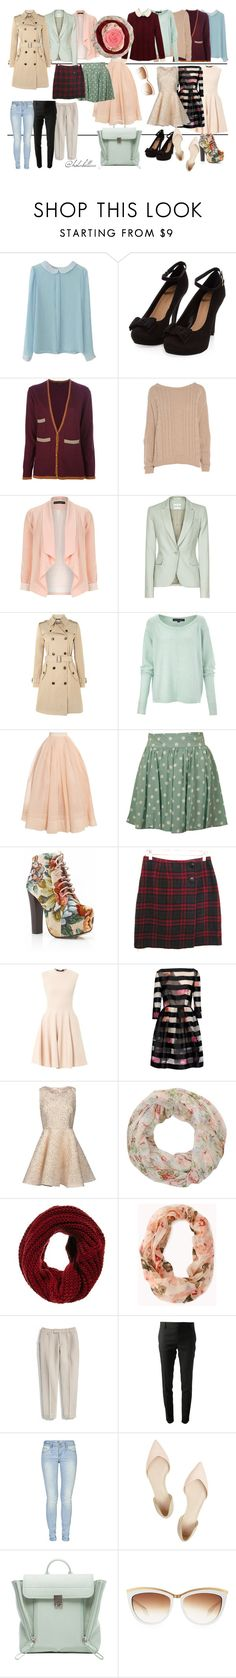 """Why"" by holabellaa ❤ liked on Polyvore featuring Stine Goya, AX Paris, Dorothy Perkins, Reiss, Hallhuber, French Connection, Martin Grant, MINKPINK, Alexander McQueen and Blumarine"